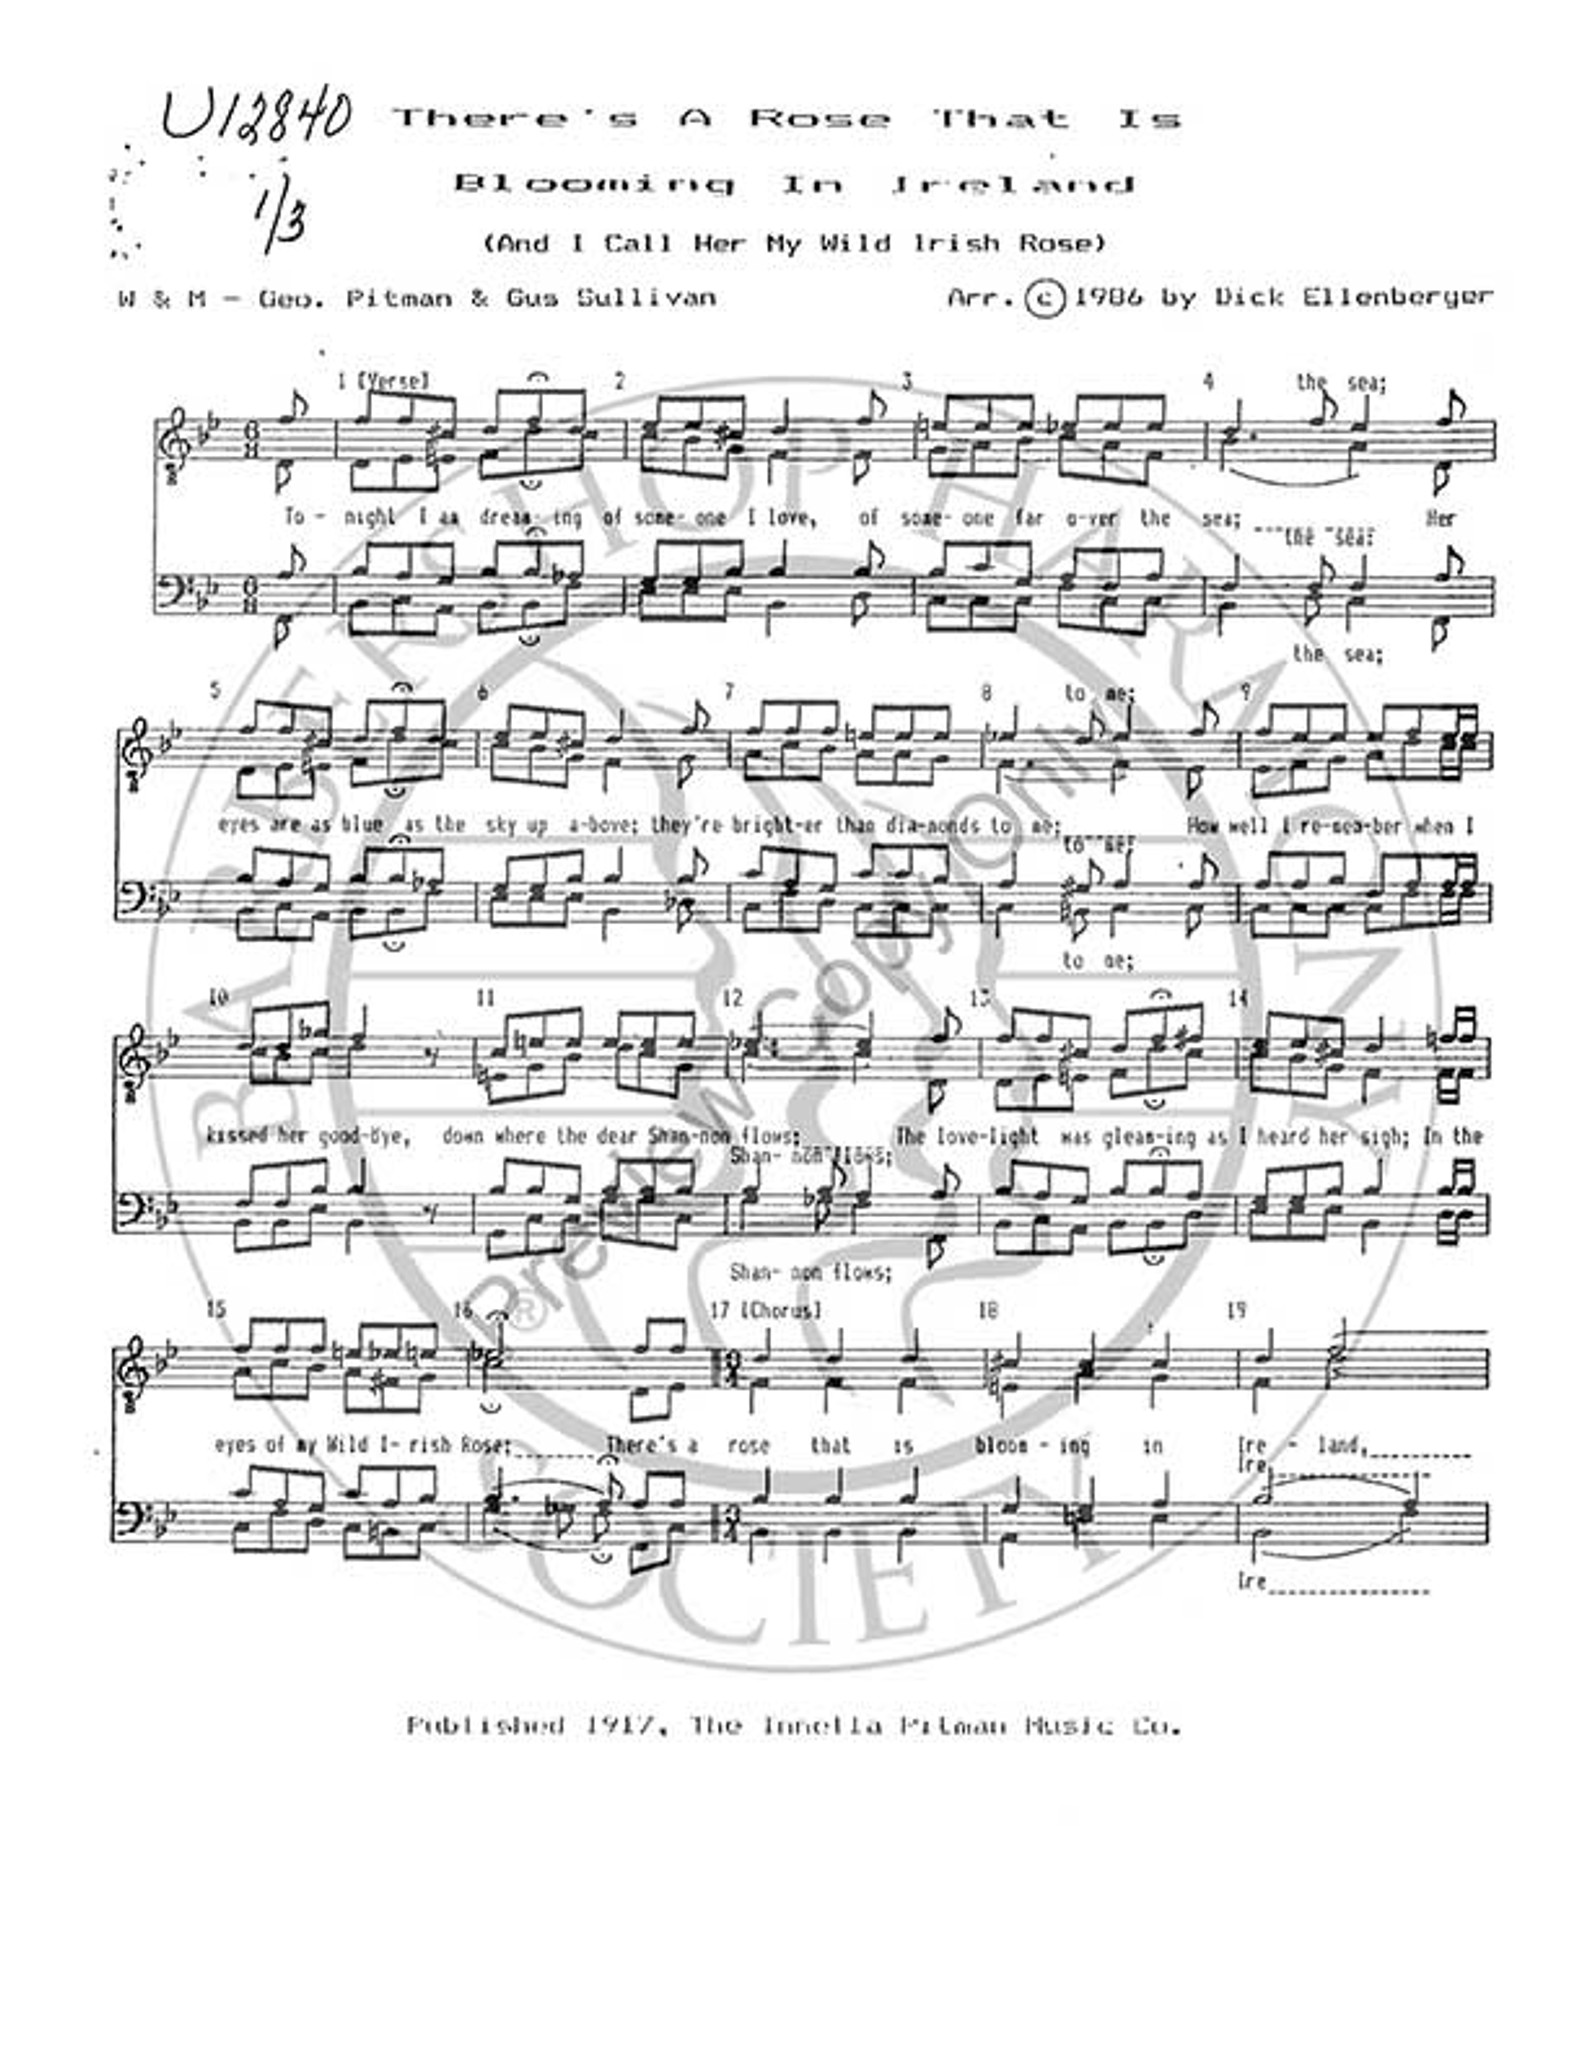 There's A Rose That Is Blooming In Ireland 1 (TTBB) (arr  Dick  Ellenberger)-Download-UNPUB